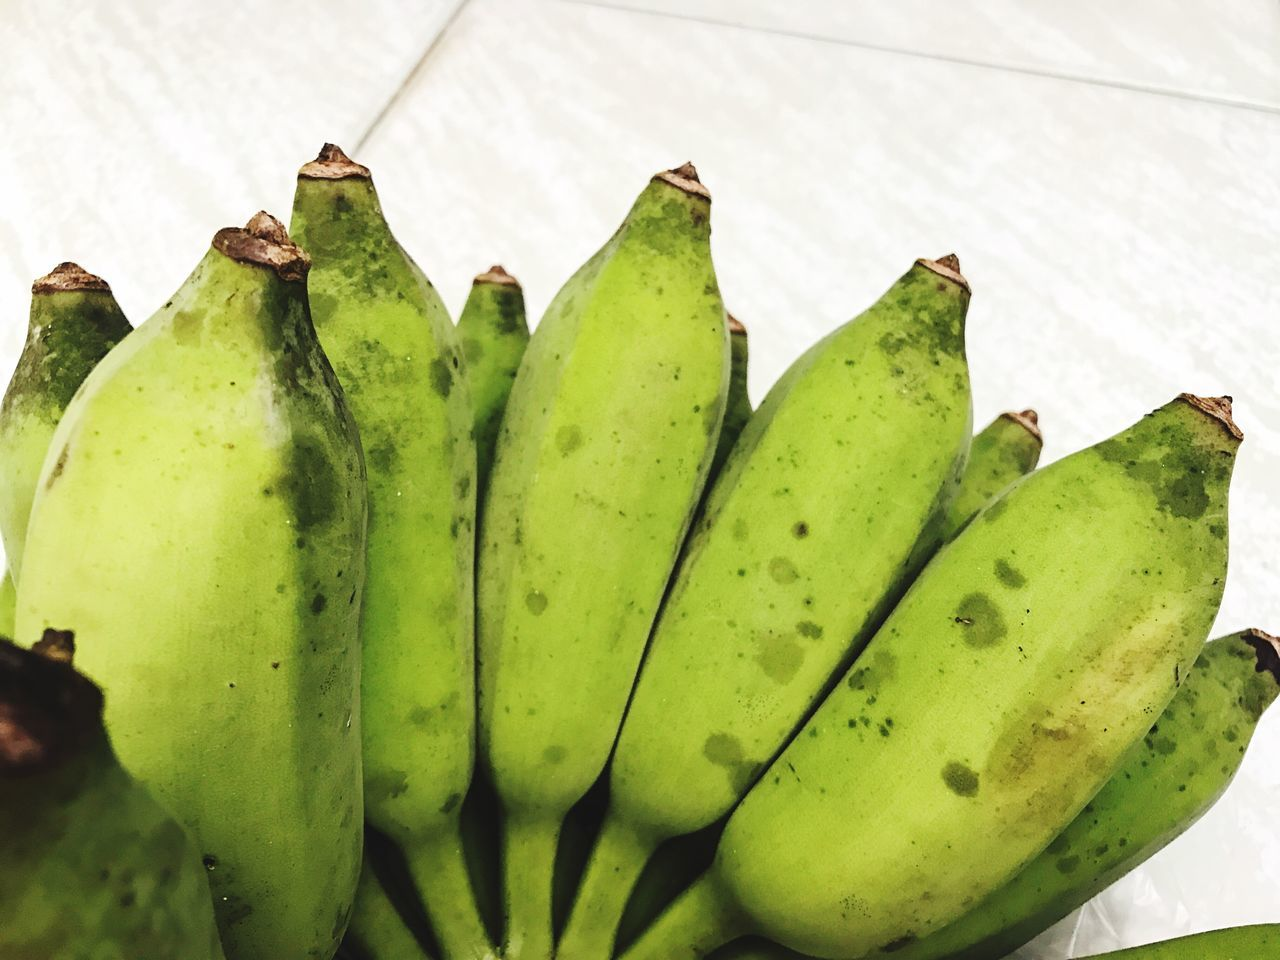 Green Color Fruit Healthy Eating Food Food And Drink Freshness Cultivated Banana Diet Dietfood Healthy Food No People Growth Close-up Outdoors Day